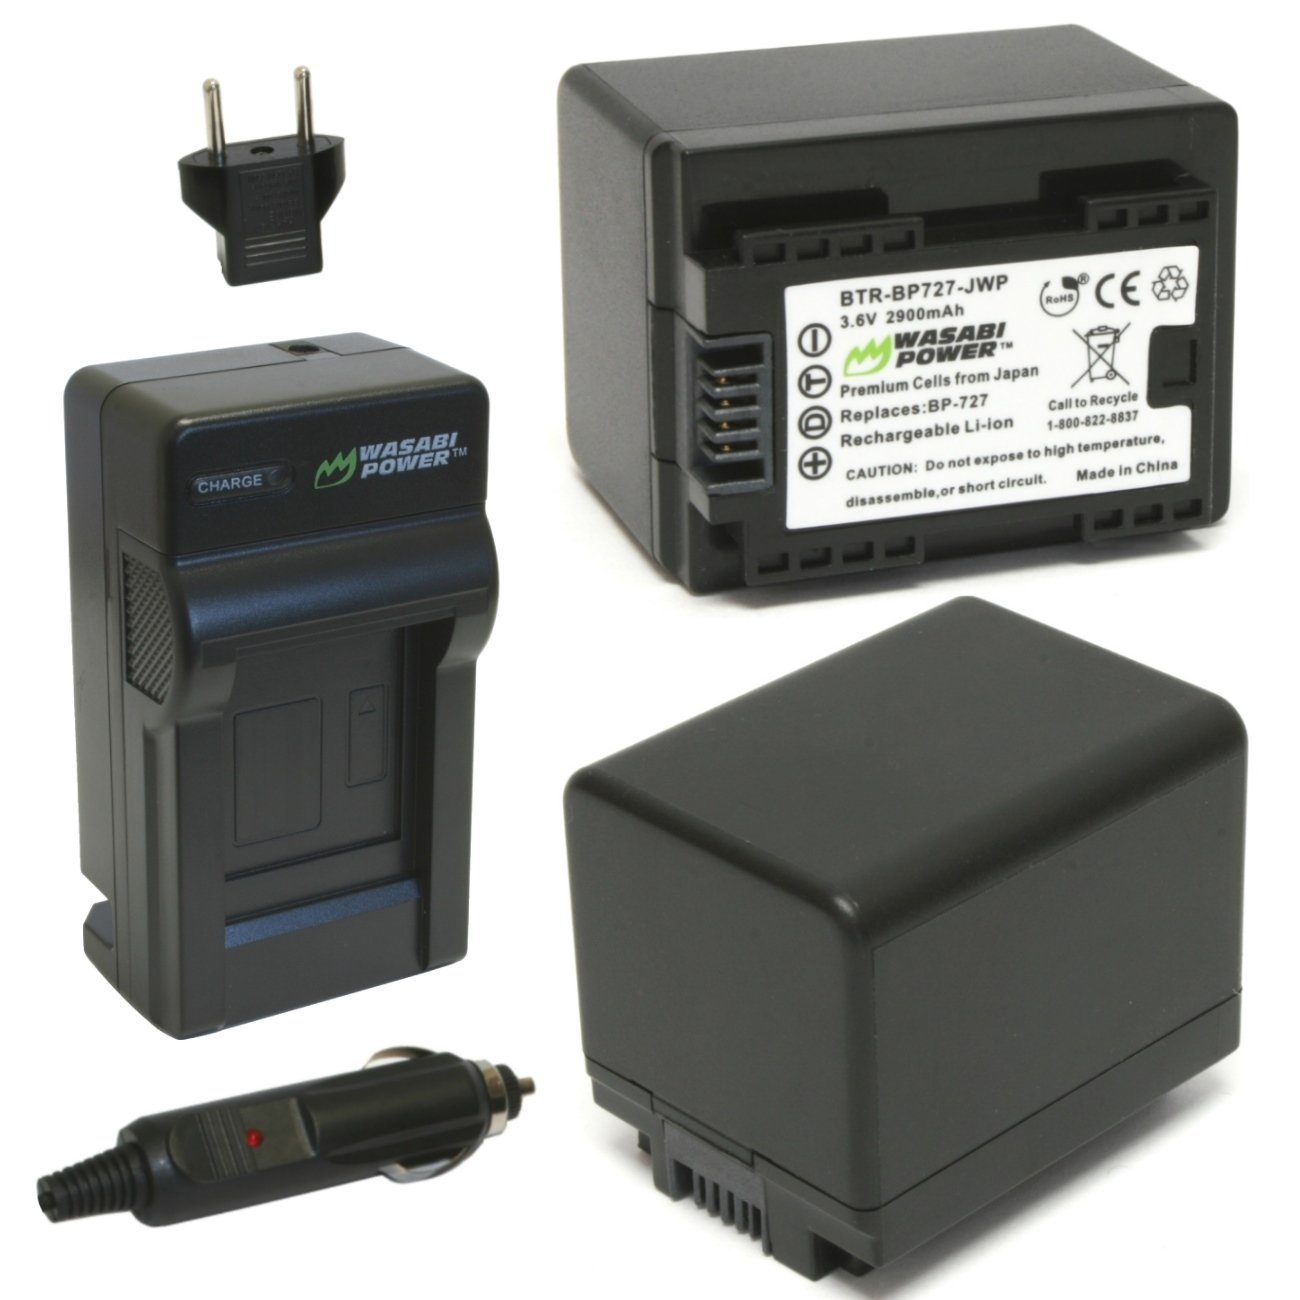 Wasabi Power Battery (2-Pack) and Charger for Canon BP-727, CG-700 and Canon VIXIA HF M50, HF M52, HF M500, HF R30, HF R32, HF R40, HF R42, HF R50, HF R52, HF R60, HF R62, HF R300, HF R400, HF R500, HF R600 KIT-BTR-BP727-LCH-BP718-01